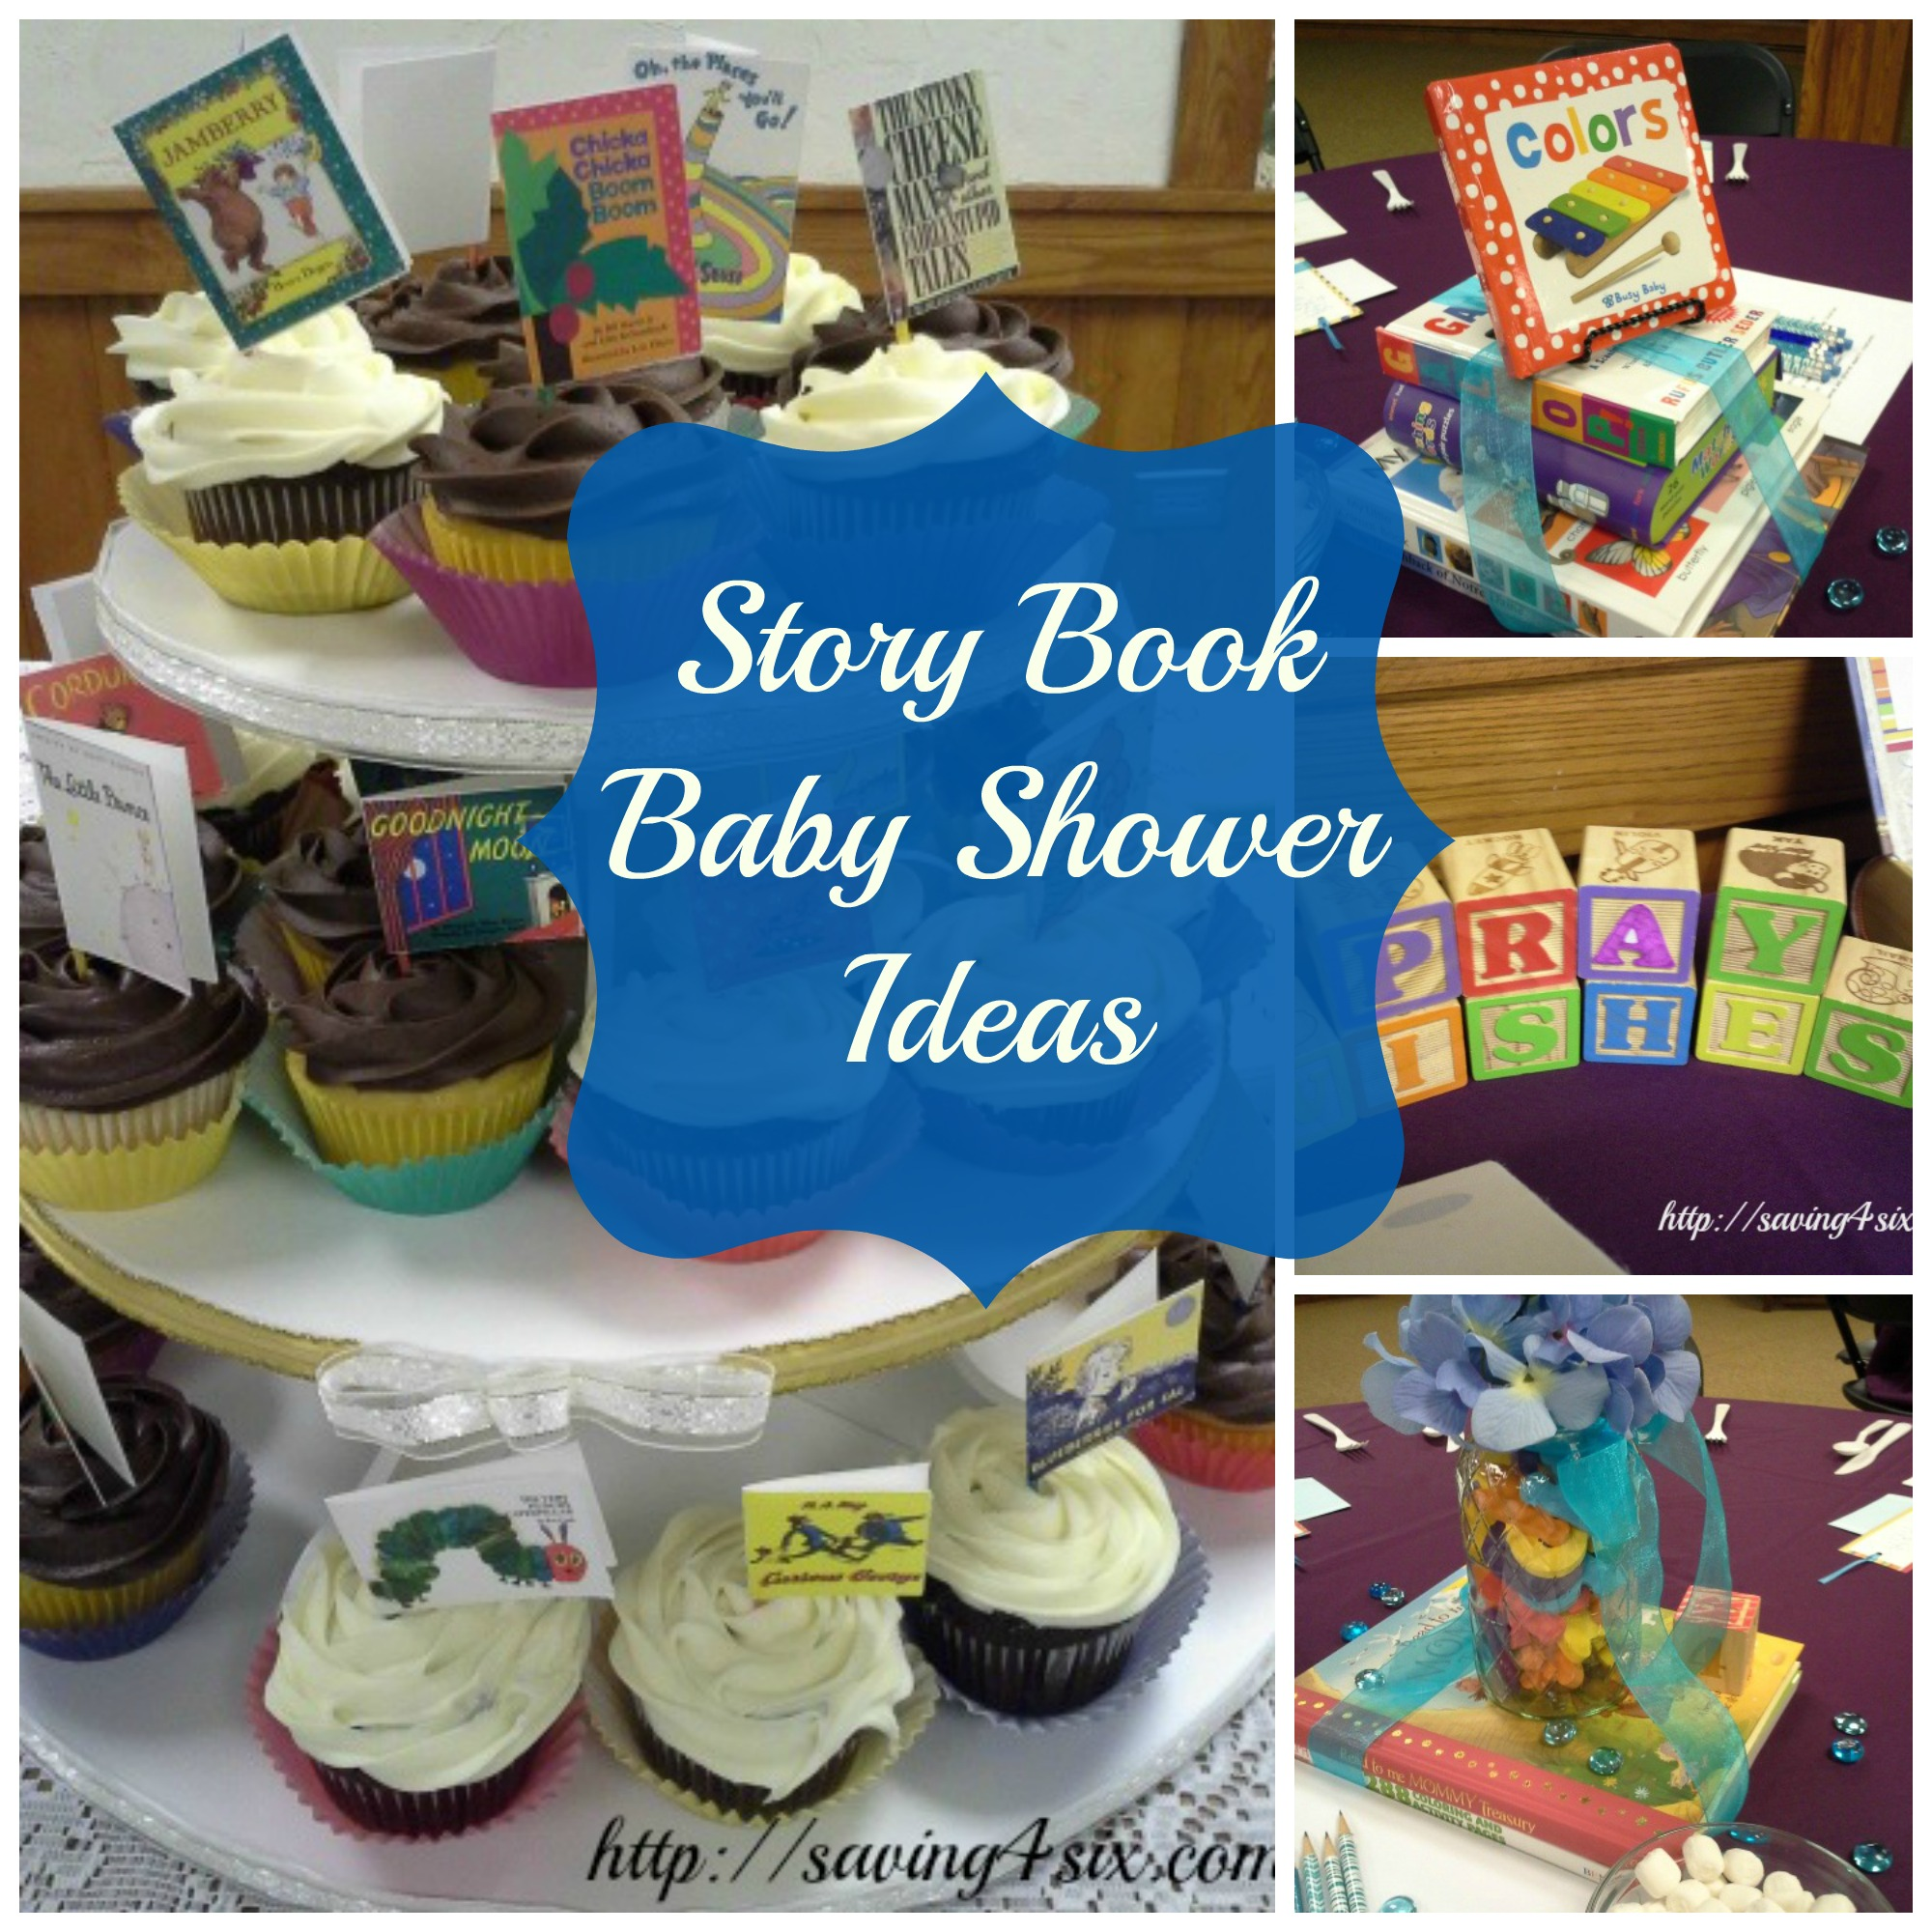 Story book baby shower ideas 5